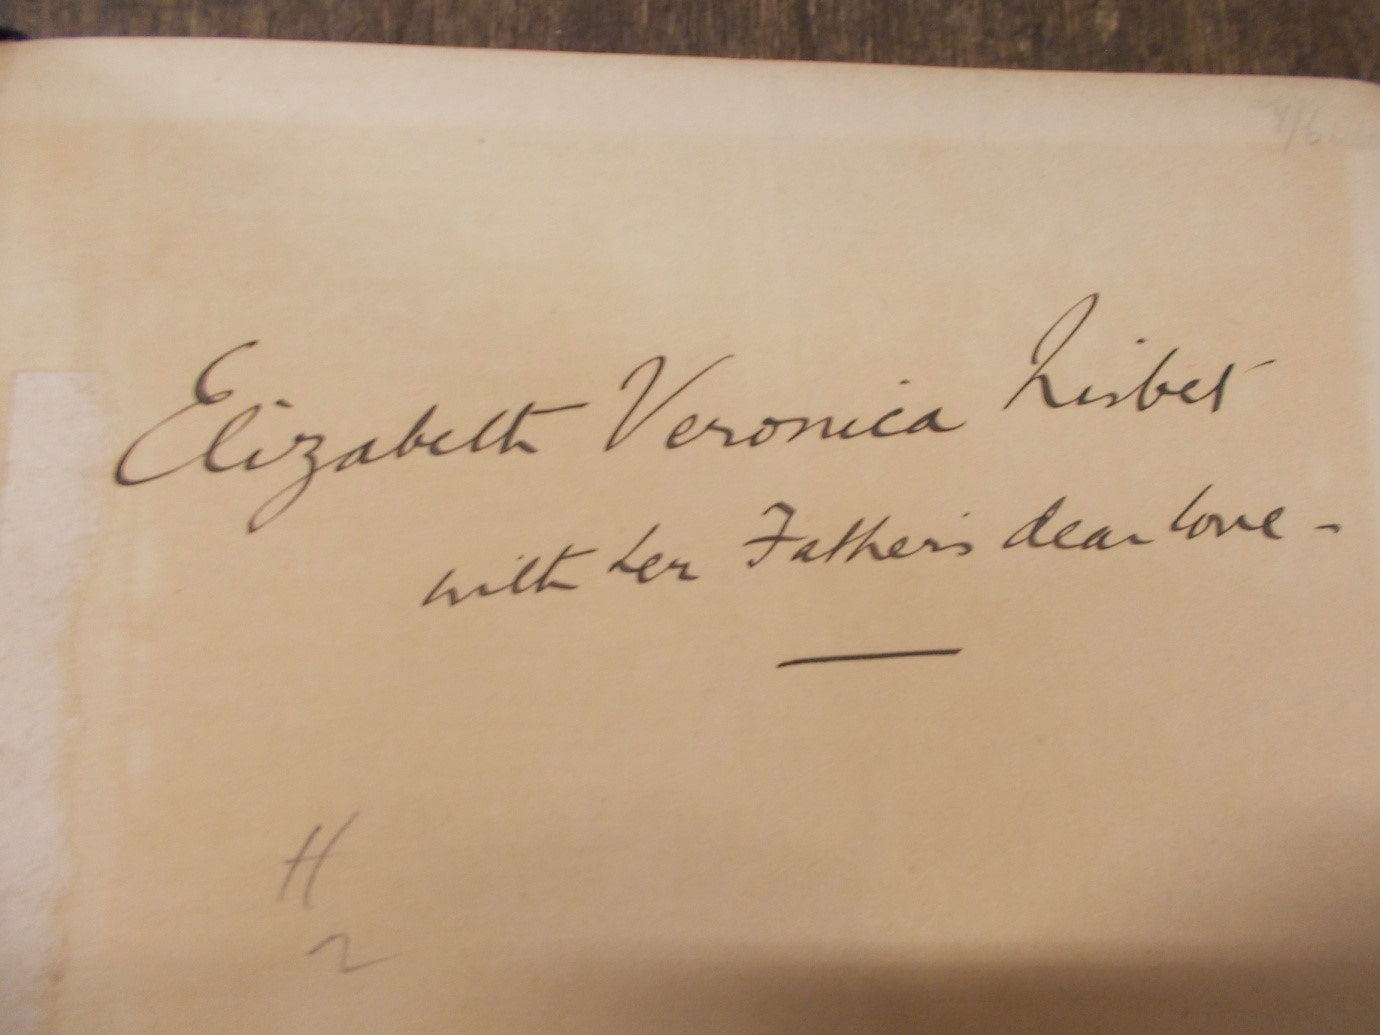 Elizabeth Veronica Nisbet's inscription inside her copy of George Du Maurier's book. Author provided